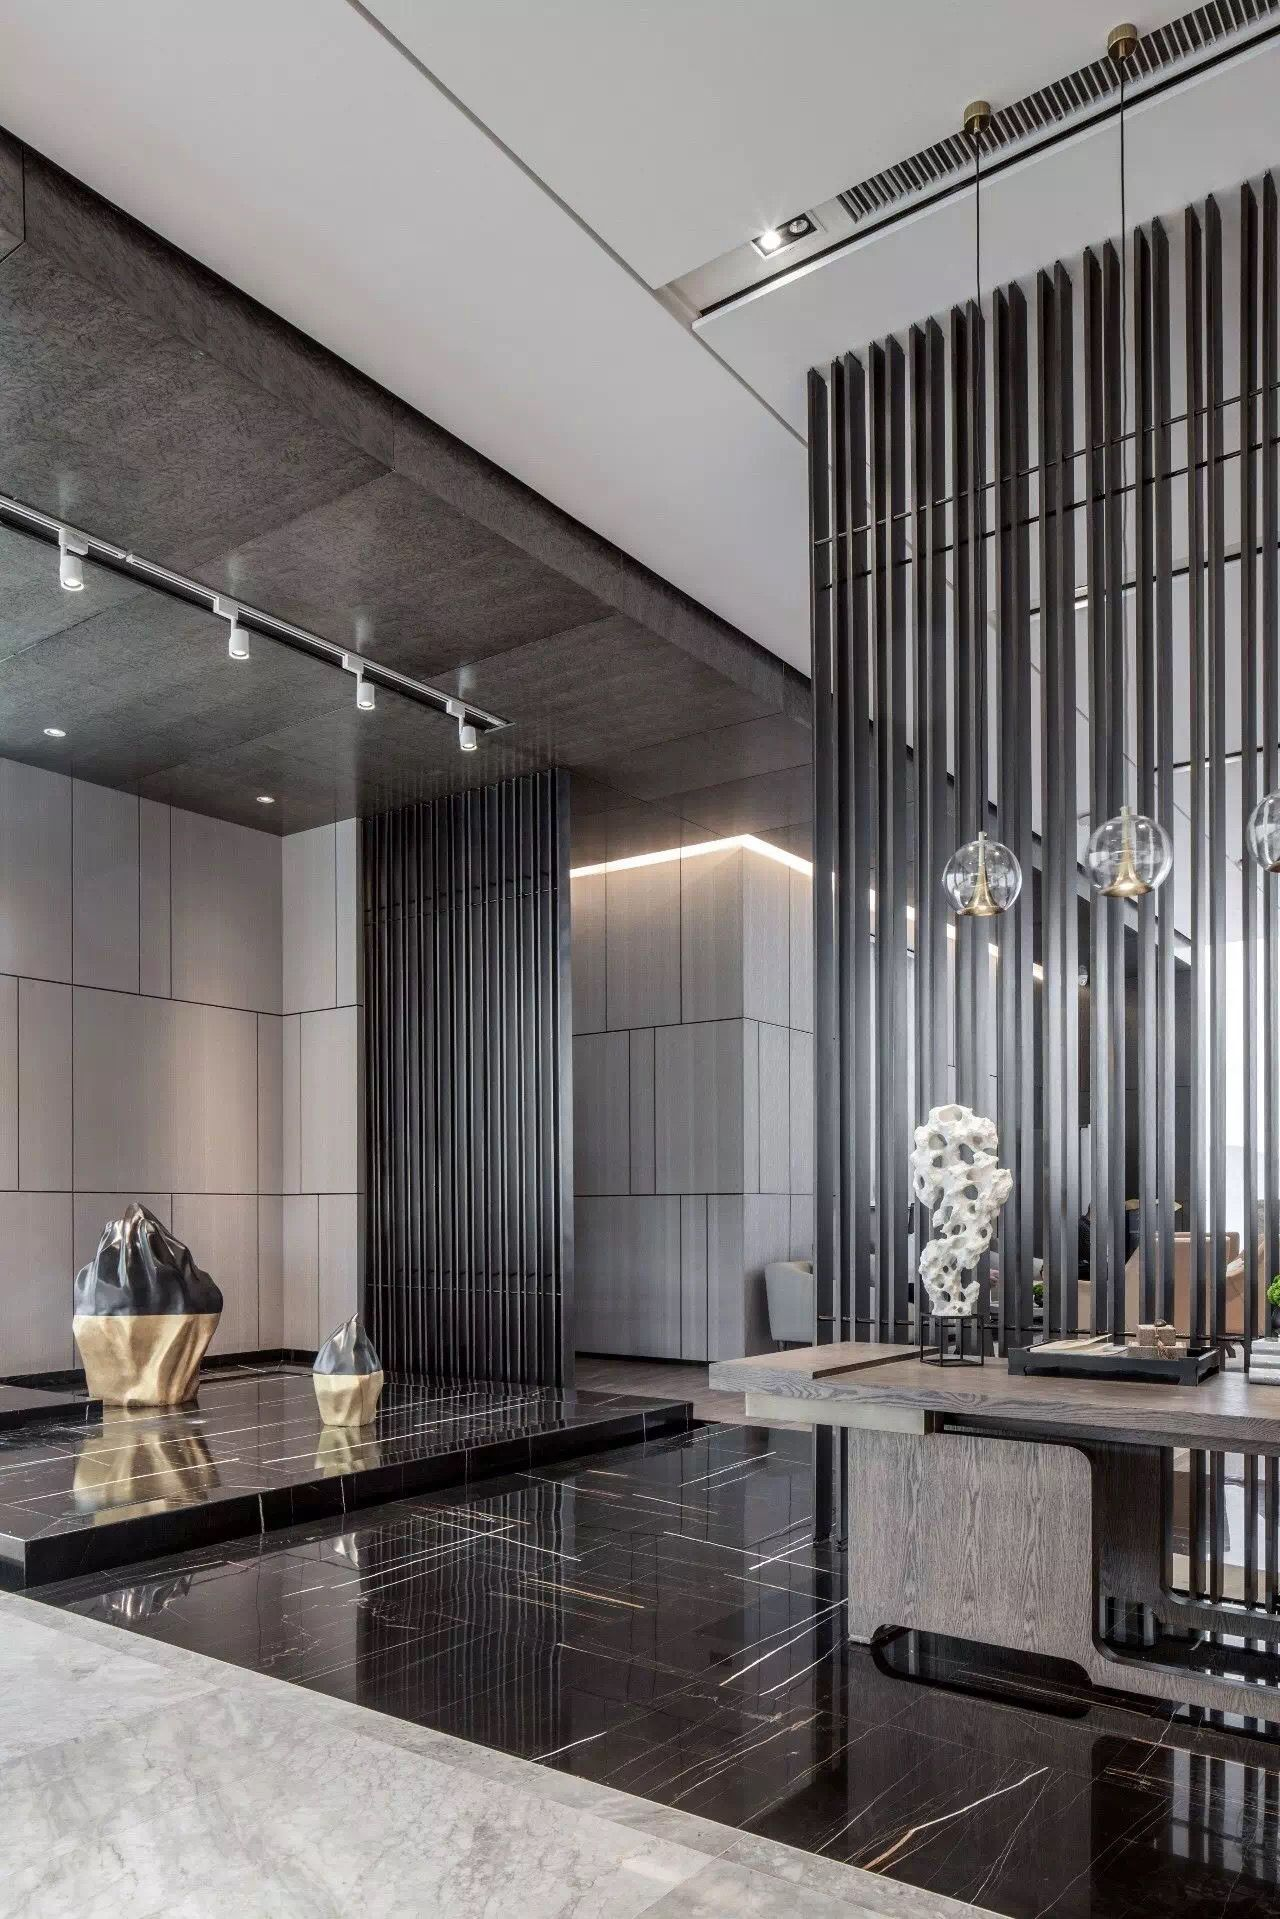 Home Lobby Interior Design Royalty Free Stock Photos: Pin By 冯宁 Ning On A 接待区 In 2019